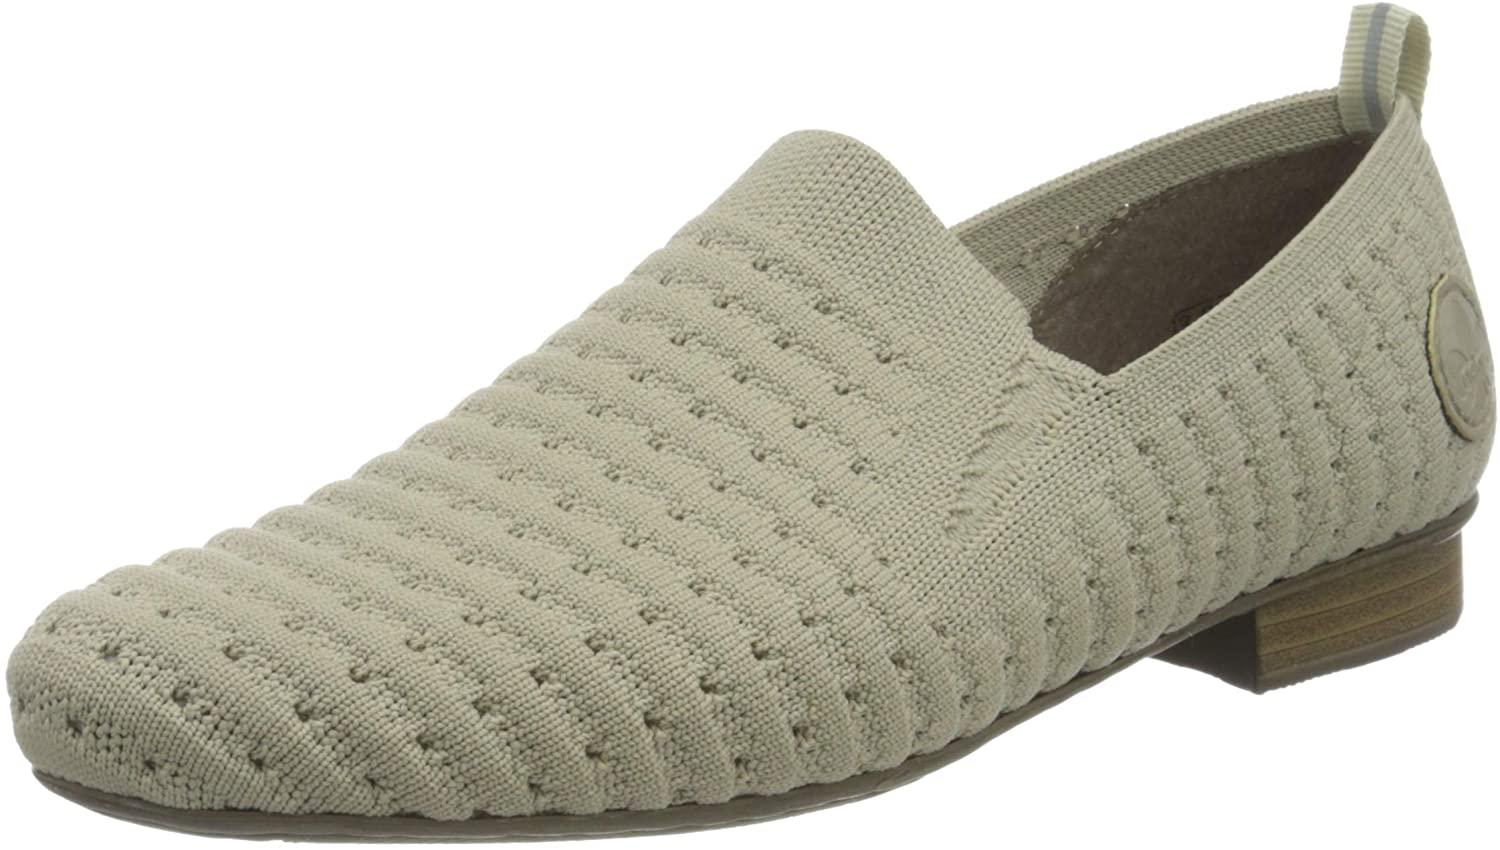 Rieker Women's Loafers